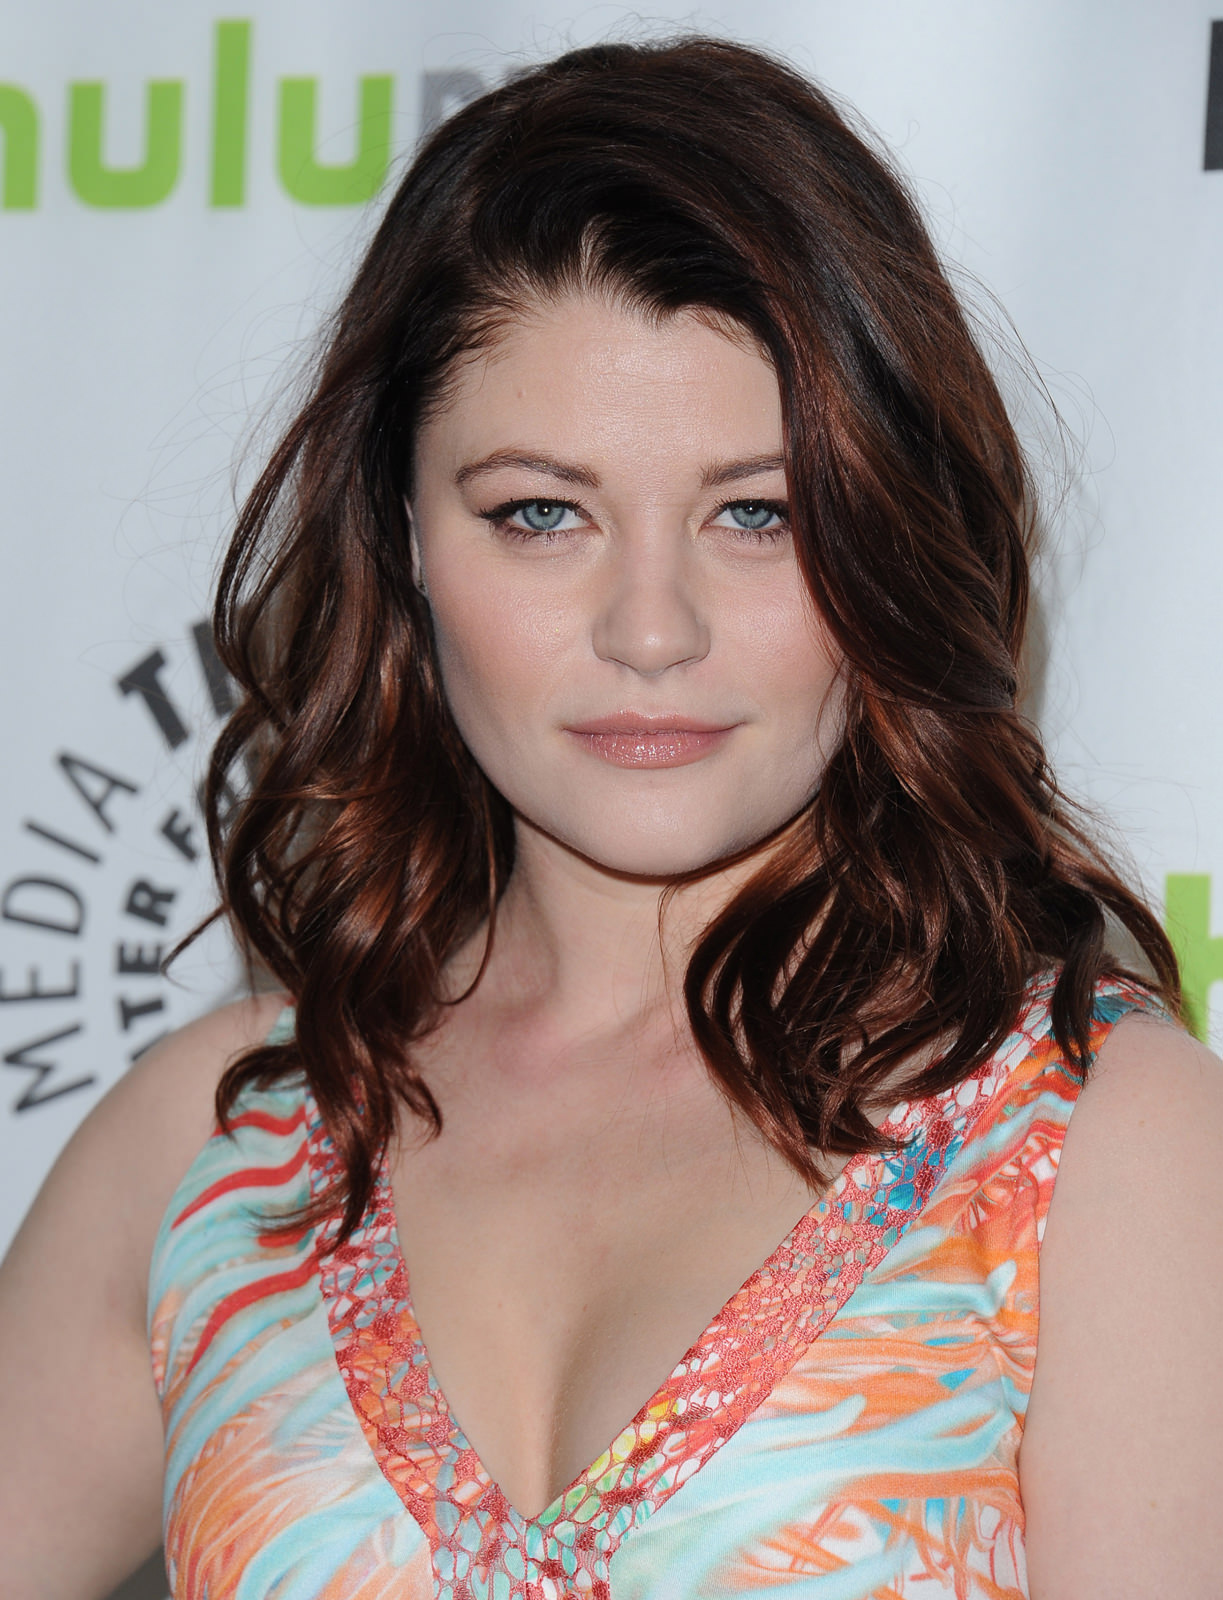 Emilie De Ravin Photo Gallery